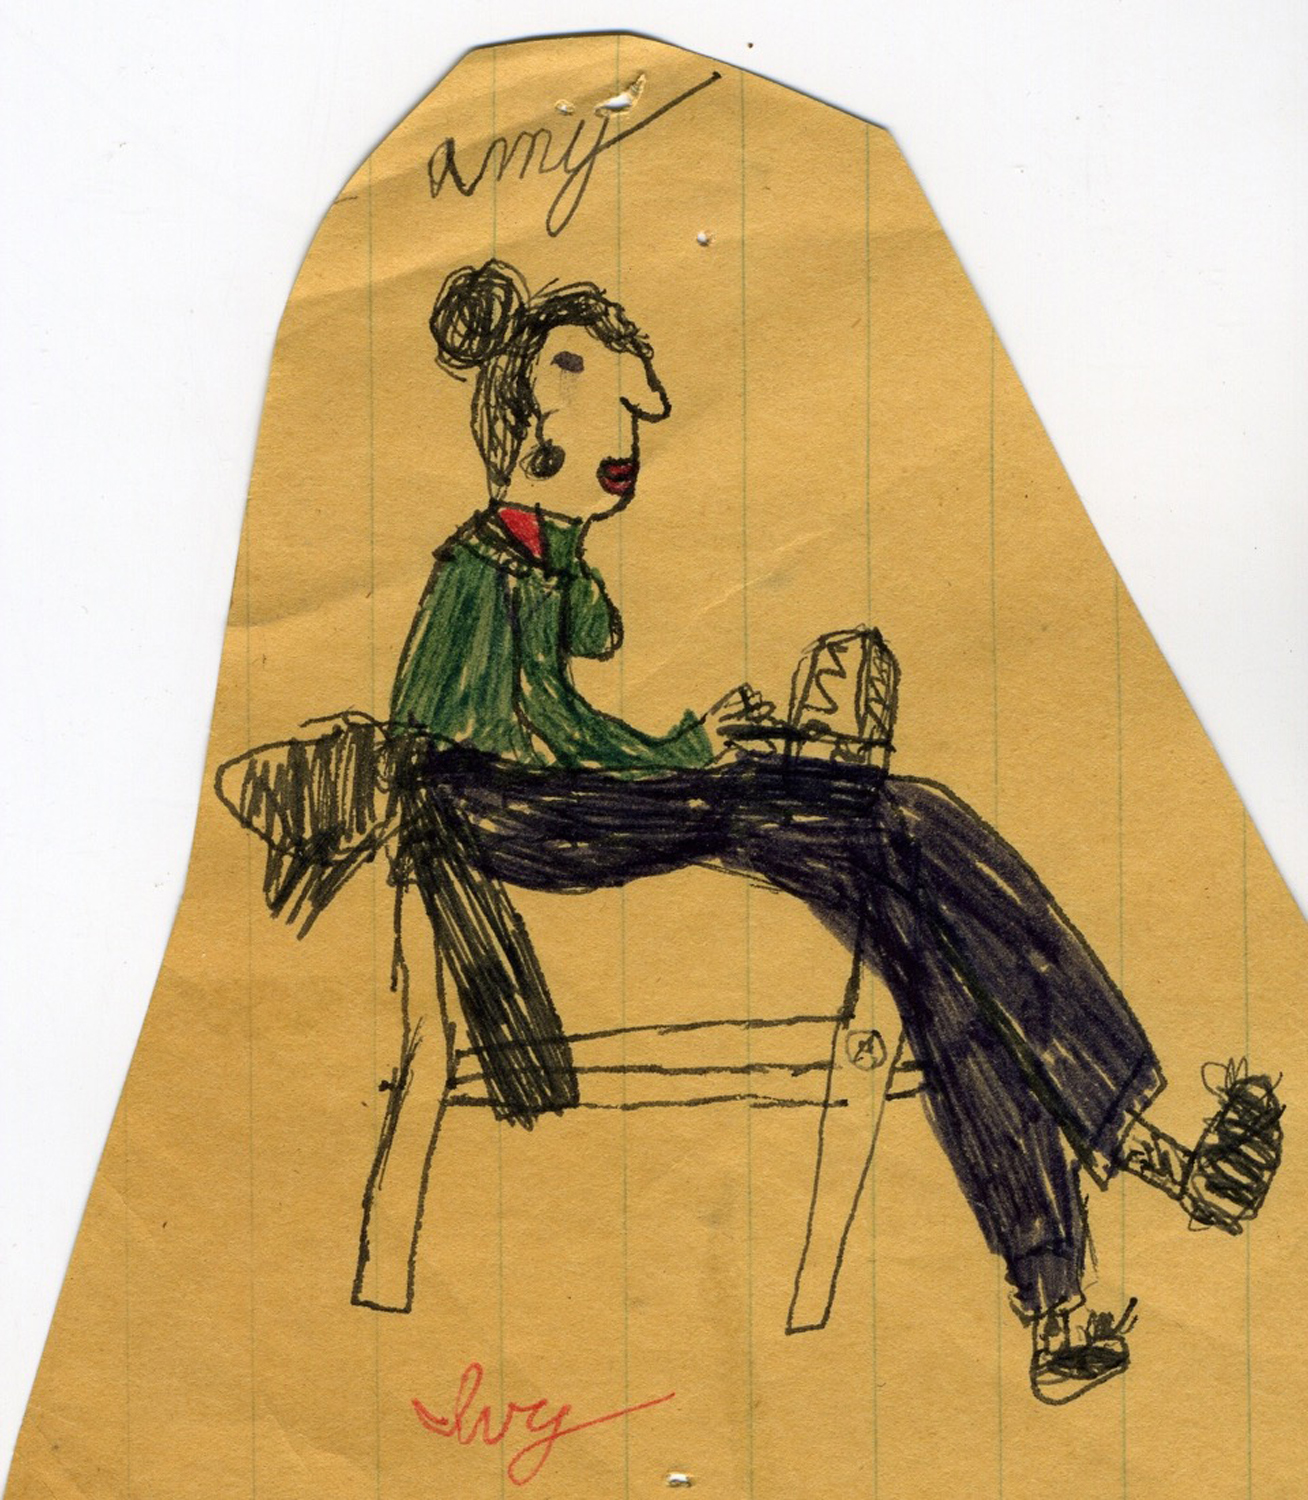 Childhood drawing, Ivy Crewdson (Amy's daughter)